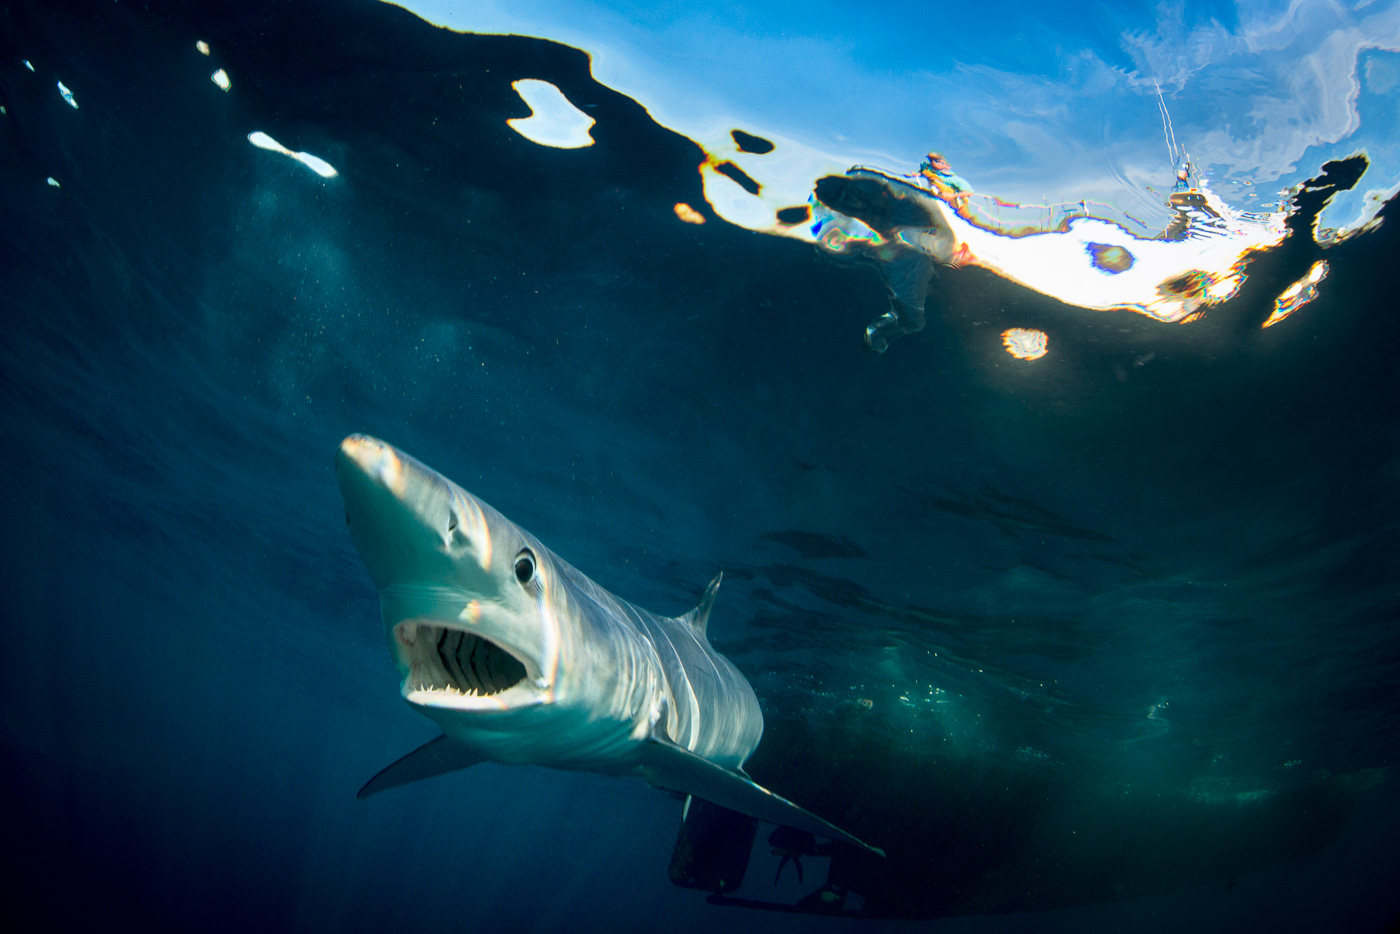 blue shark swim underwater open mouth